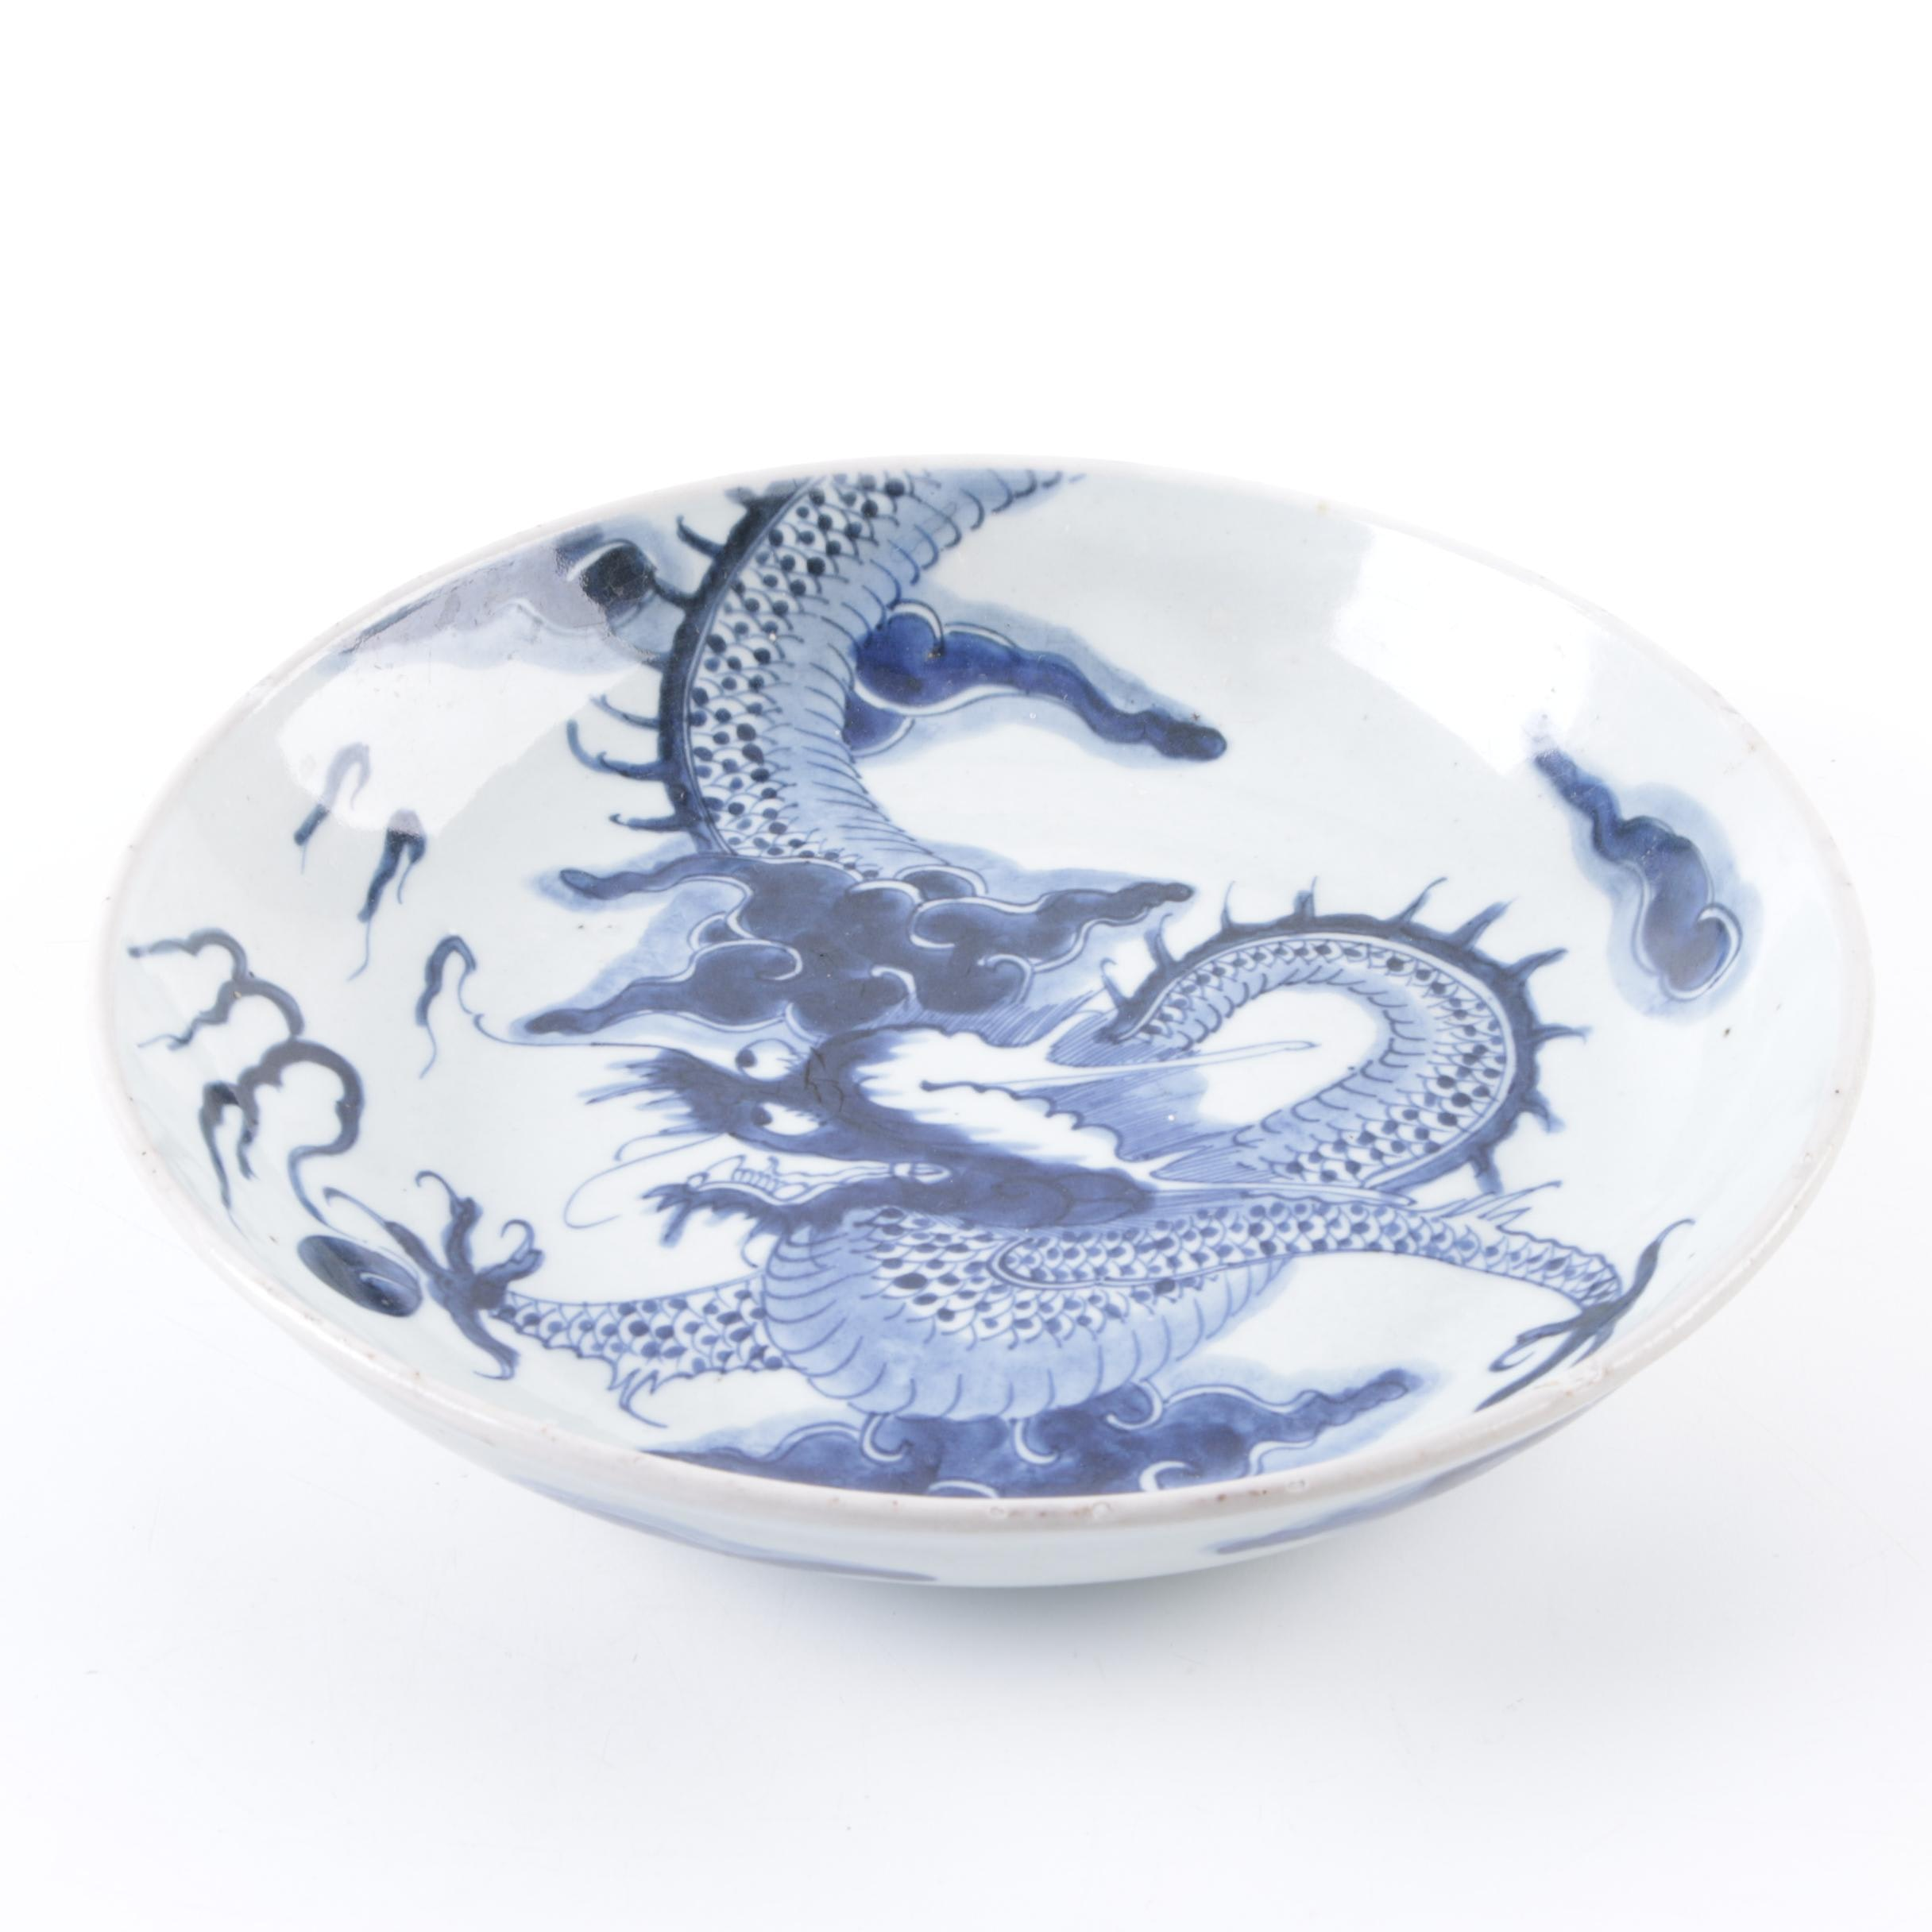 East Asian Ceramic Bowl